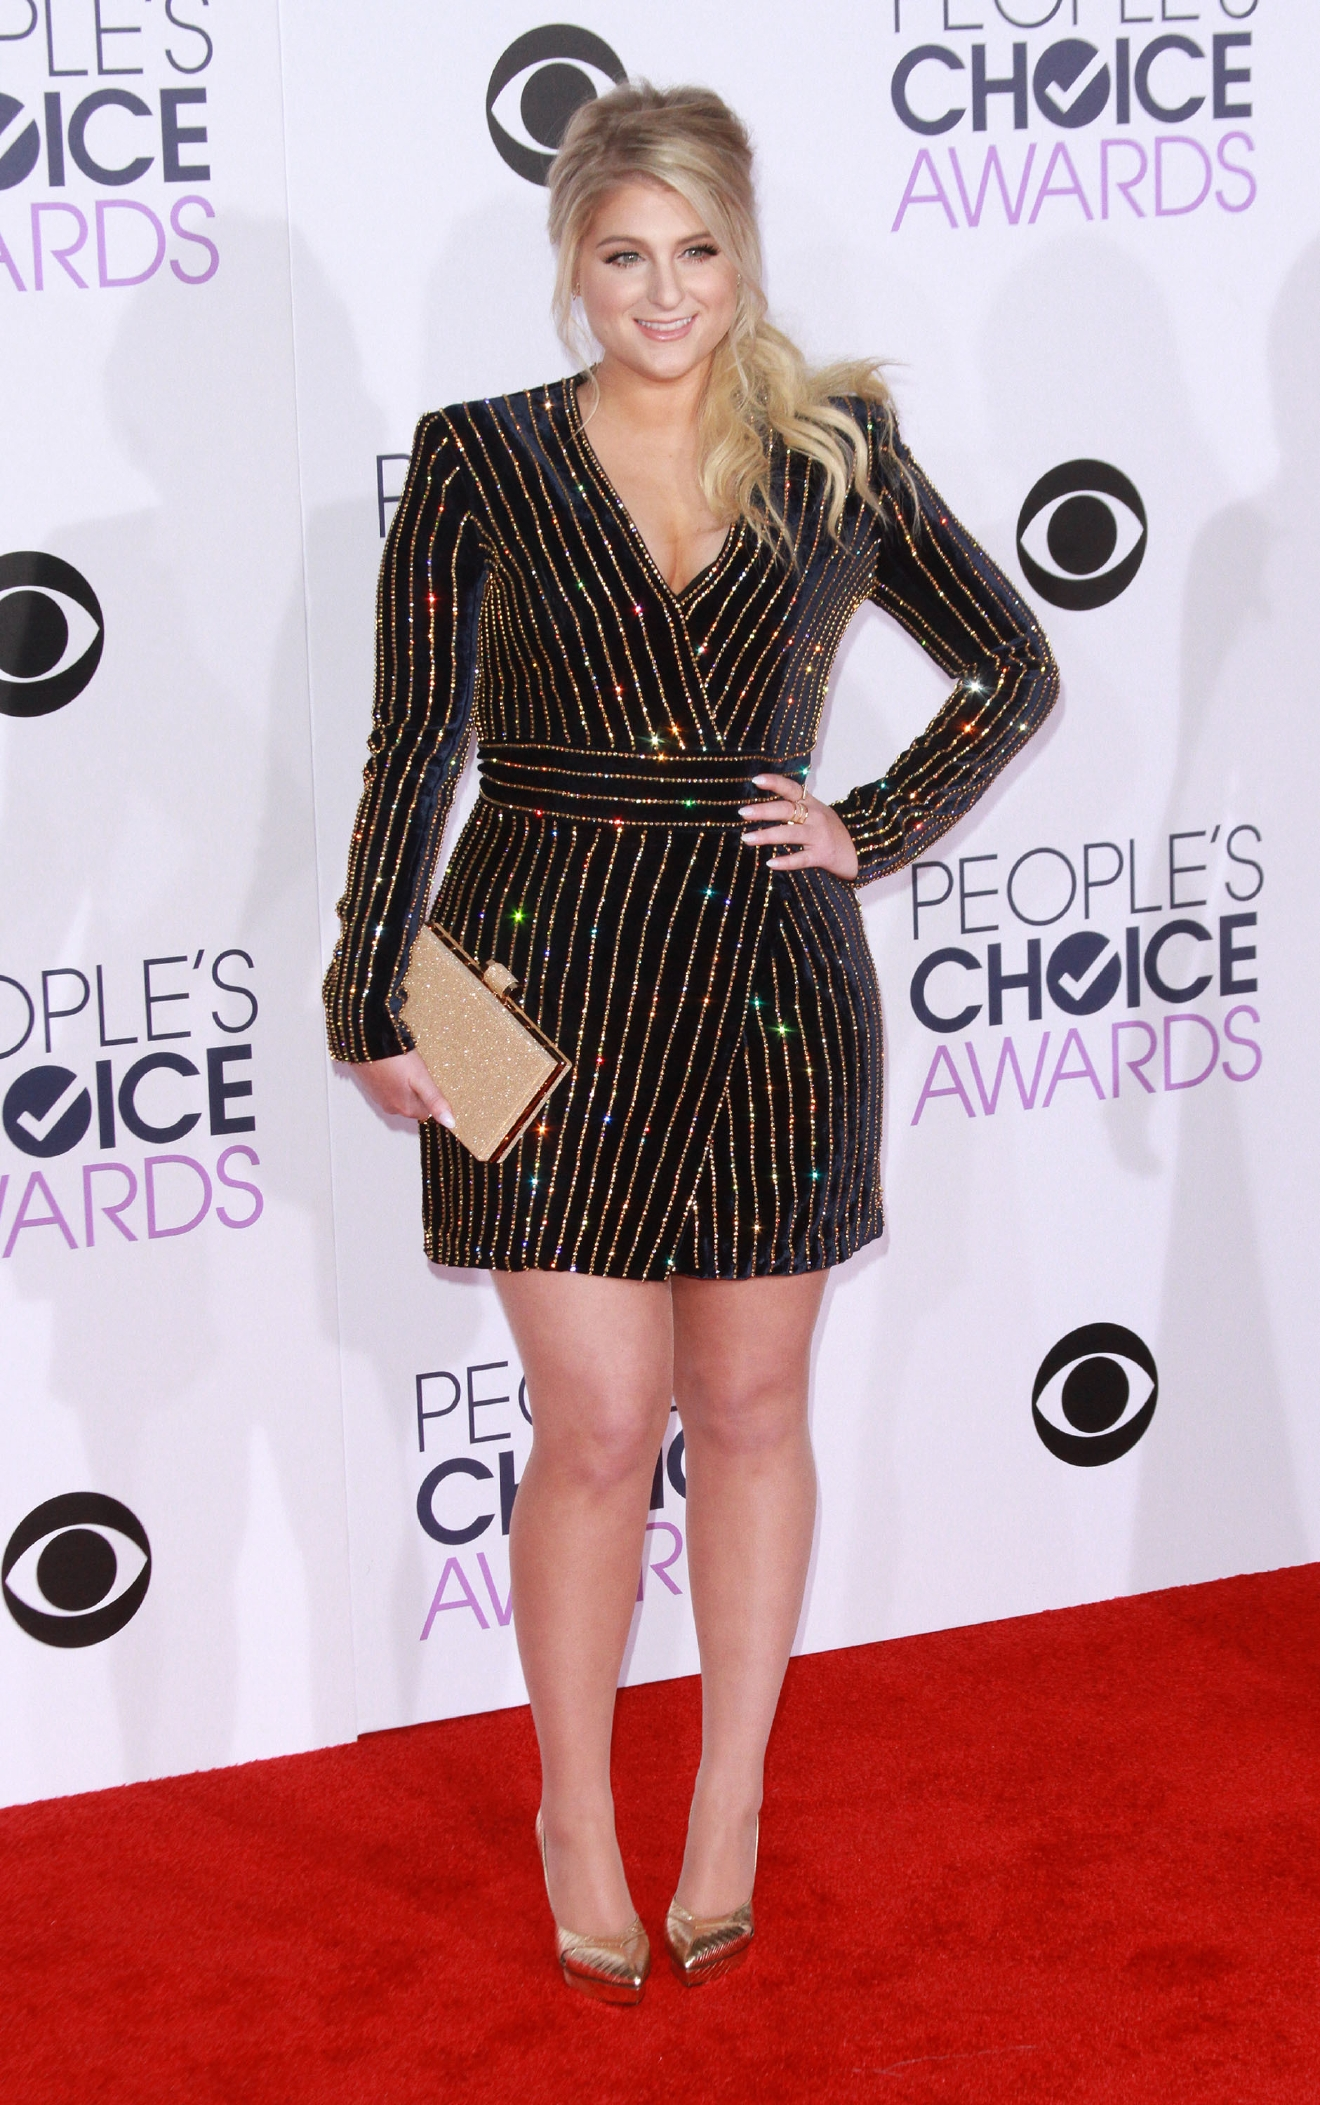 People's Choice Awards 2016 held at the Microsoft Theatre L.A. Live - Arrivals                                    Featuring: Meghan Trainor                  Where: Los Angeles, California, United States                  When: 06 Jan 2016                  Credit: Adriana M. Barraza/WENN.com